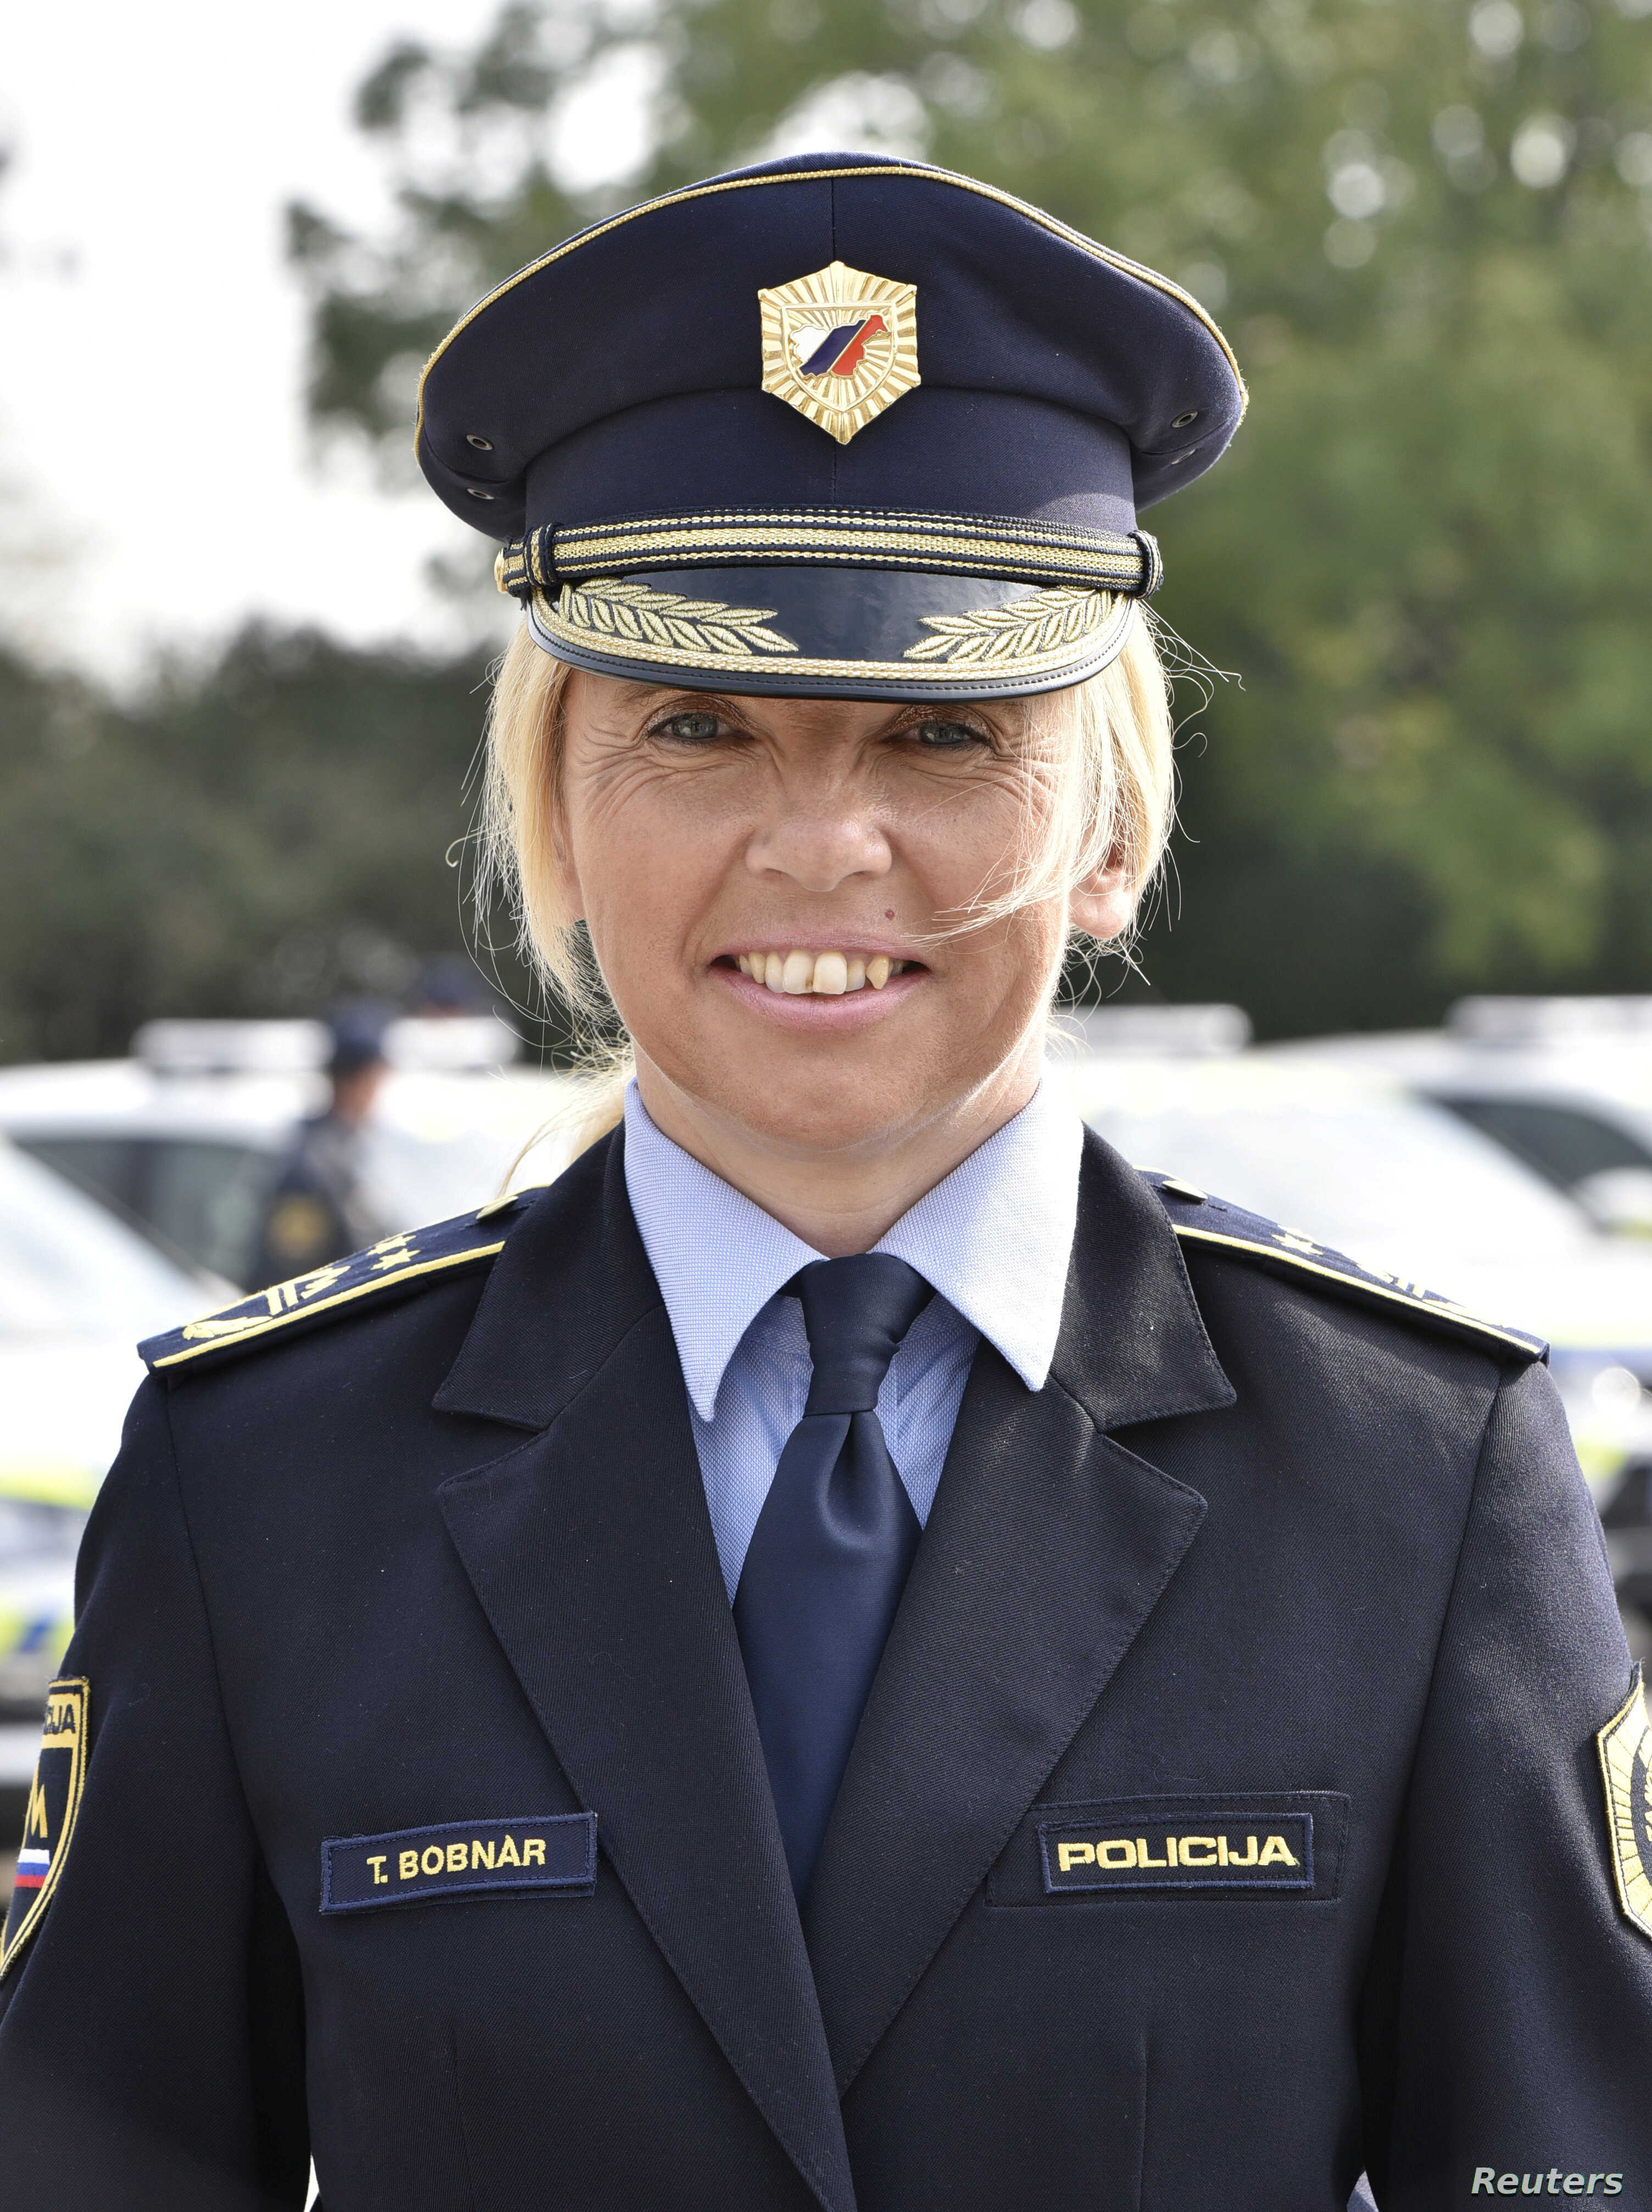 Slovenia Gets First Female Police Chief | Voice of America - English